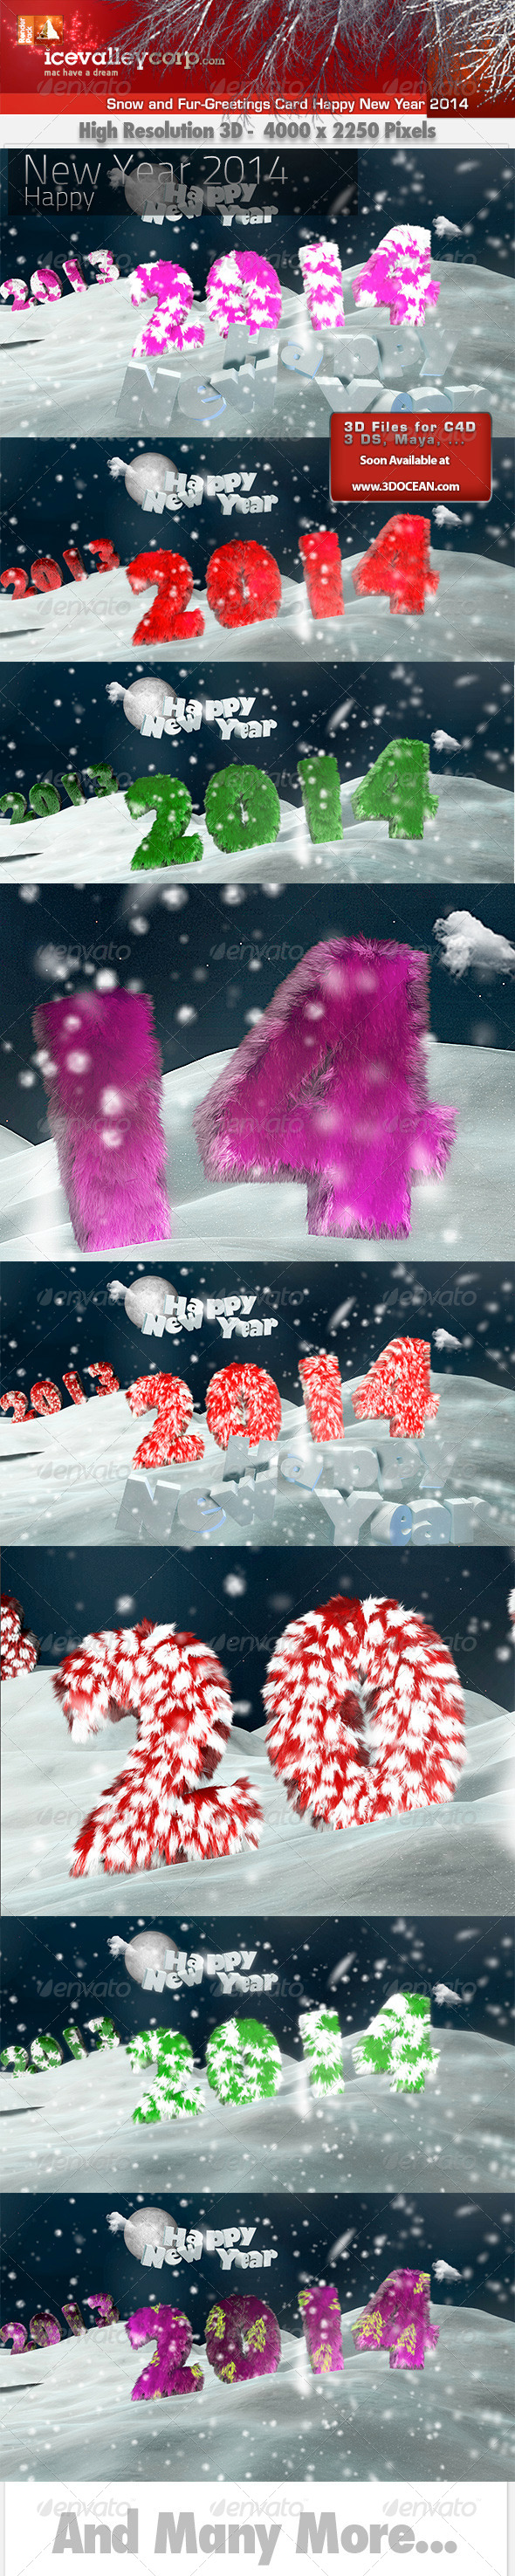 GraphicRiver Snow and Fur-Greetings Card Happy New Year 2014 6366773